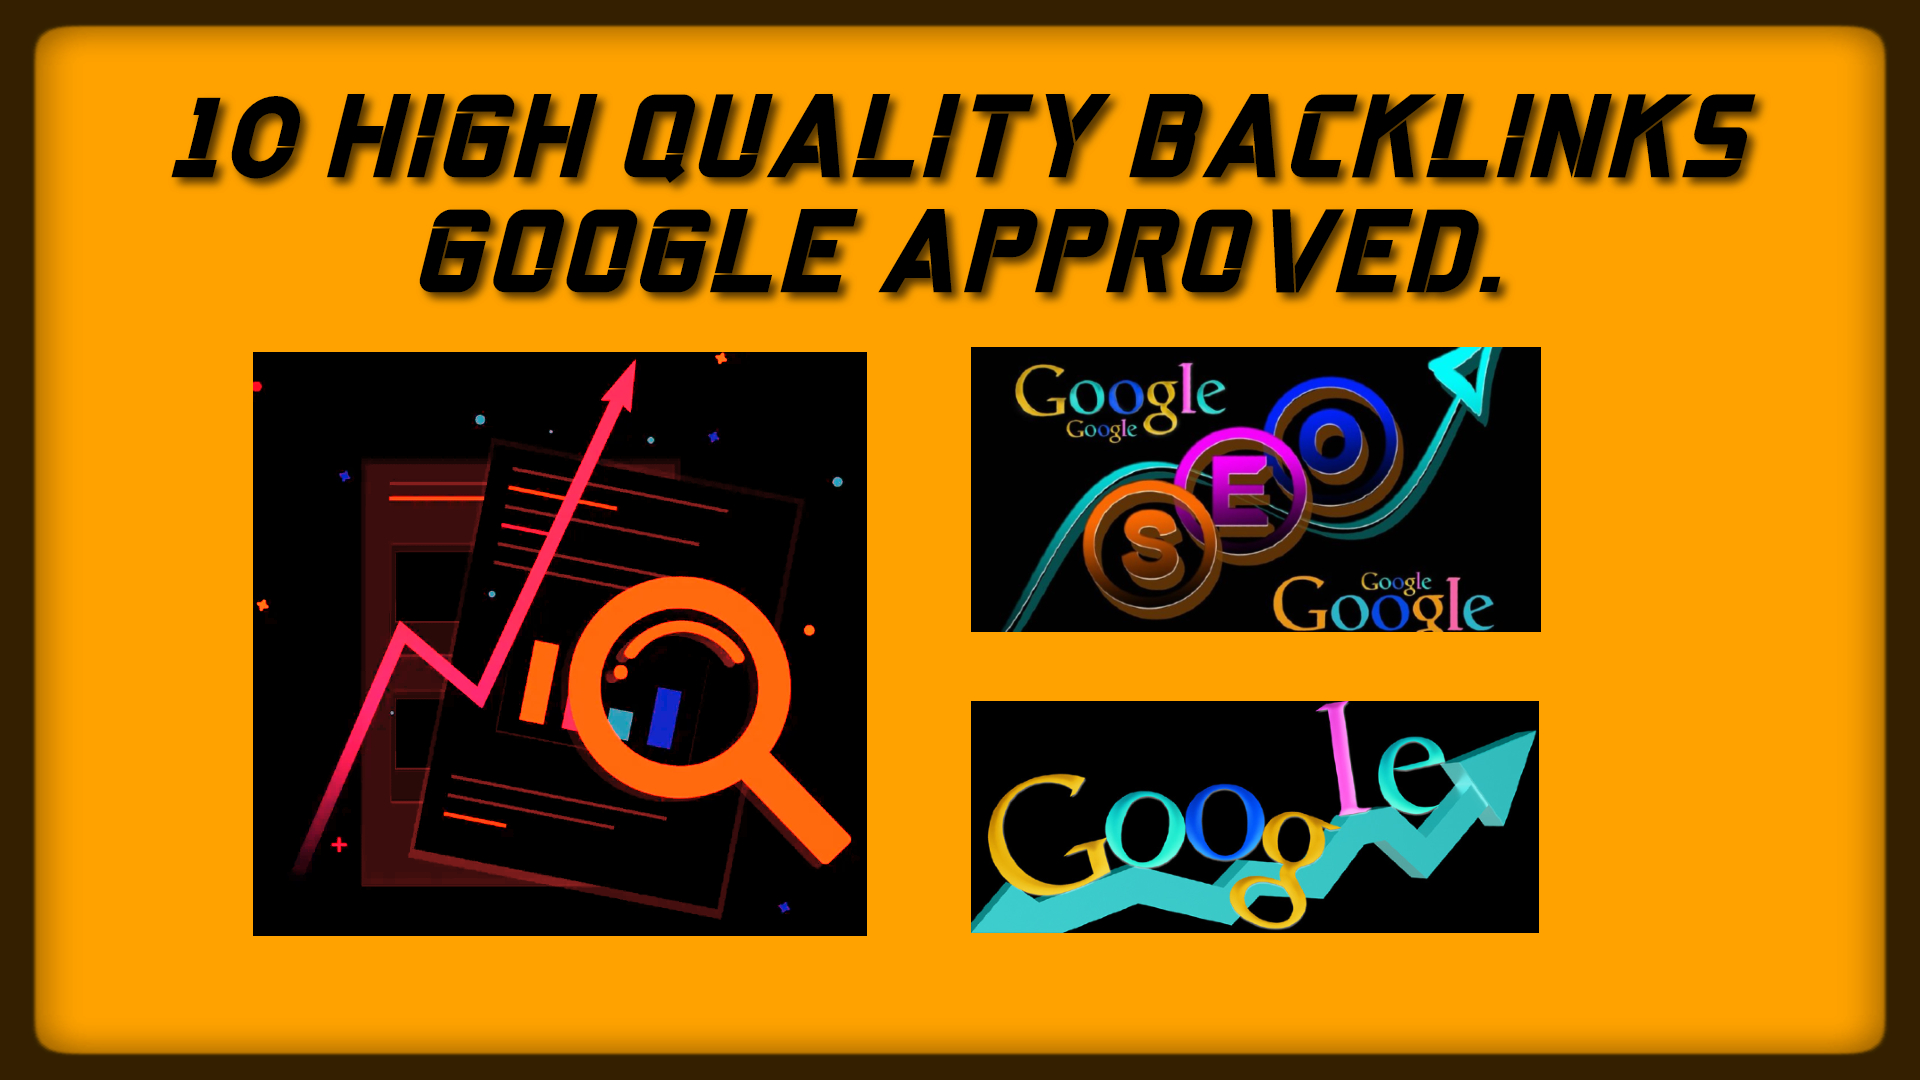 Create 10 High Quality Backlinks Google Approved